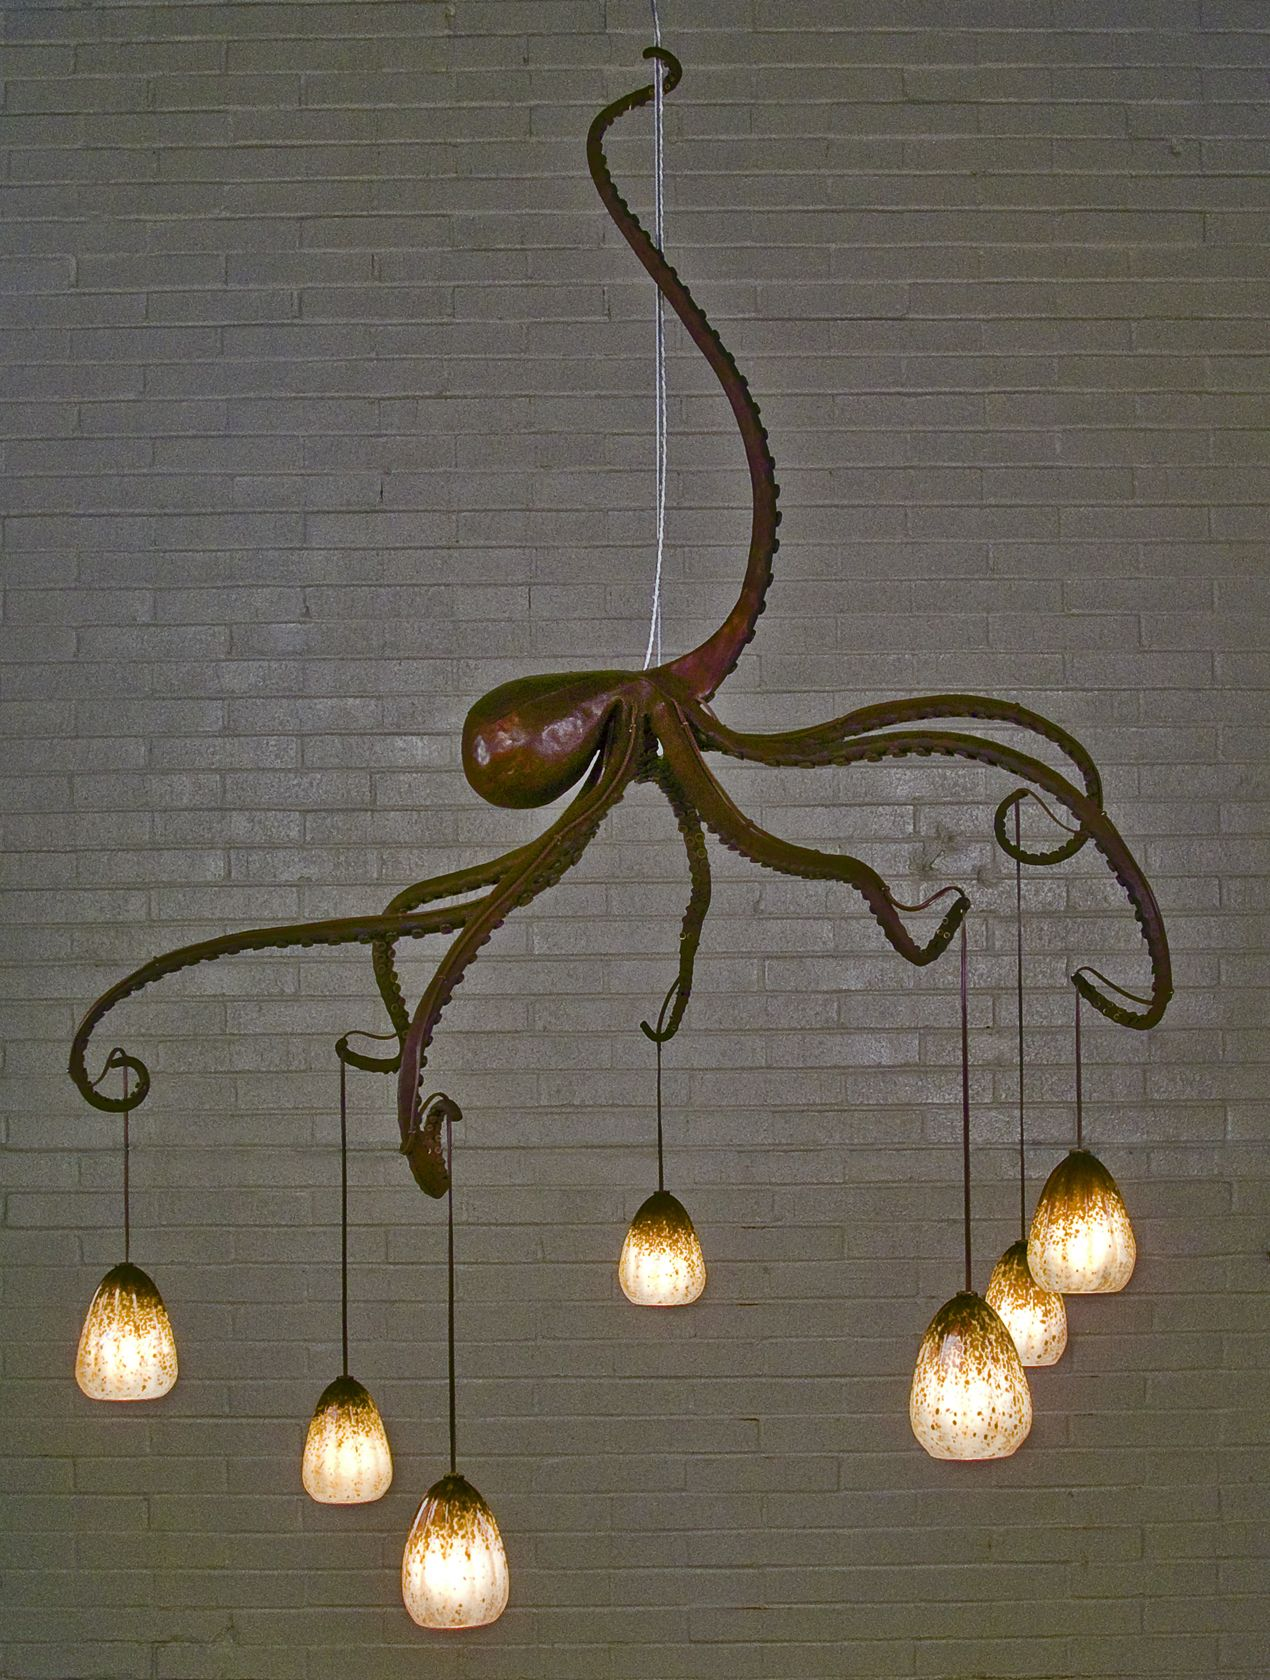 Blacksmith Forged Custom Design Daniel Hopper Design Iron – Stores That Sell Chandeliers